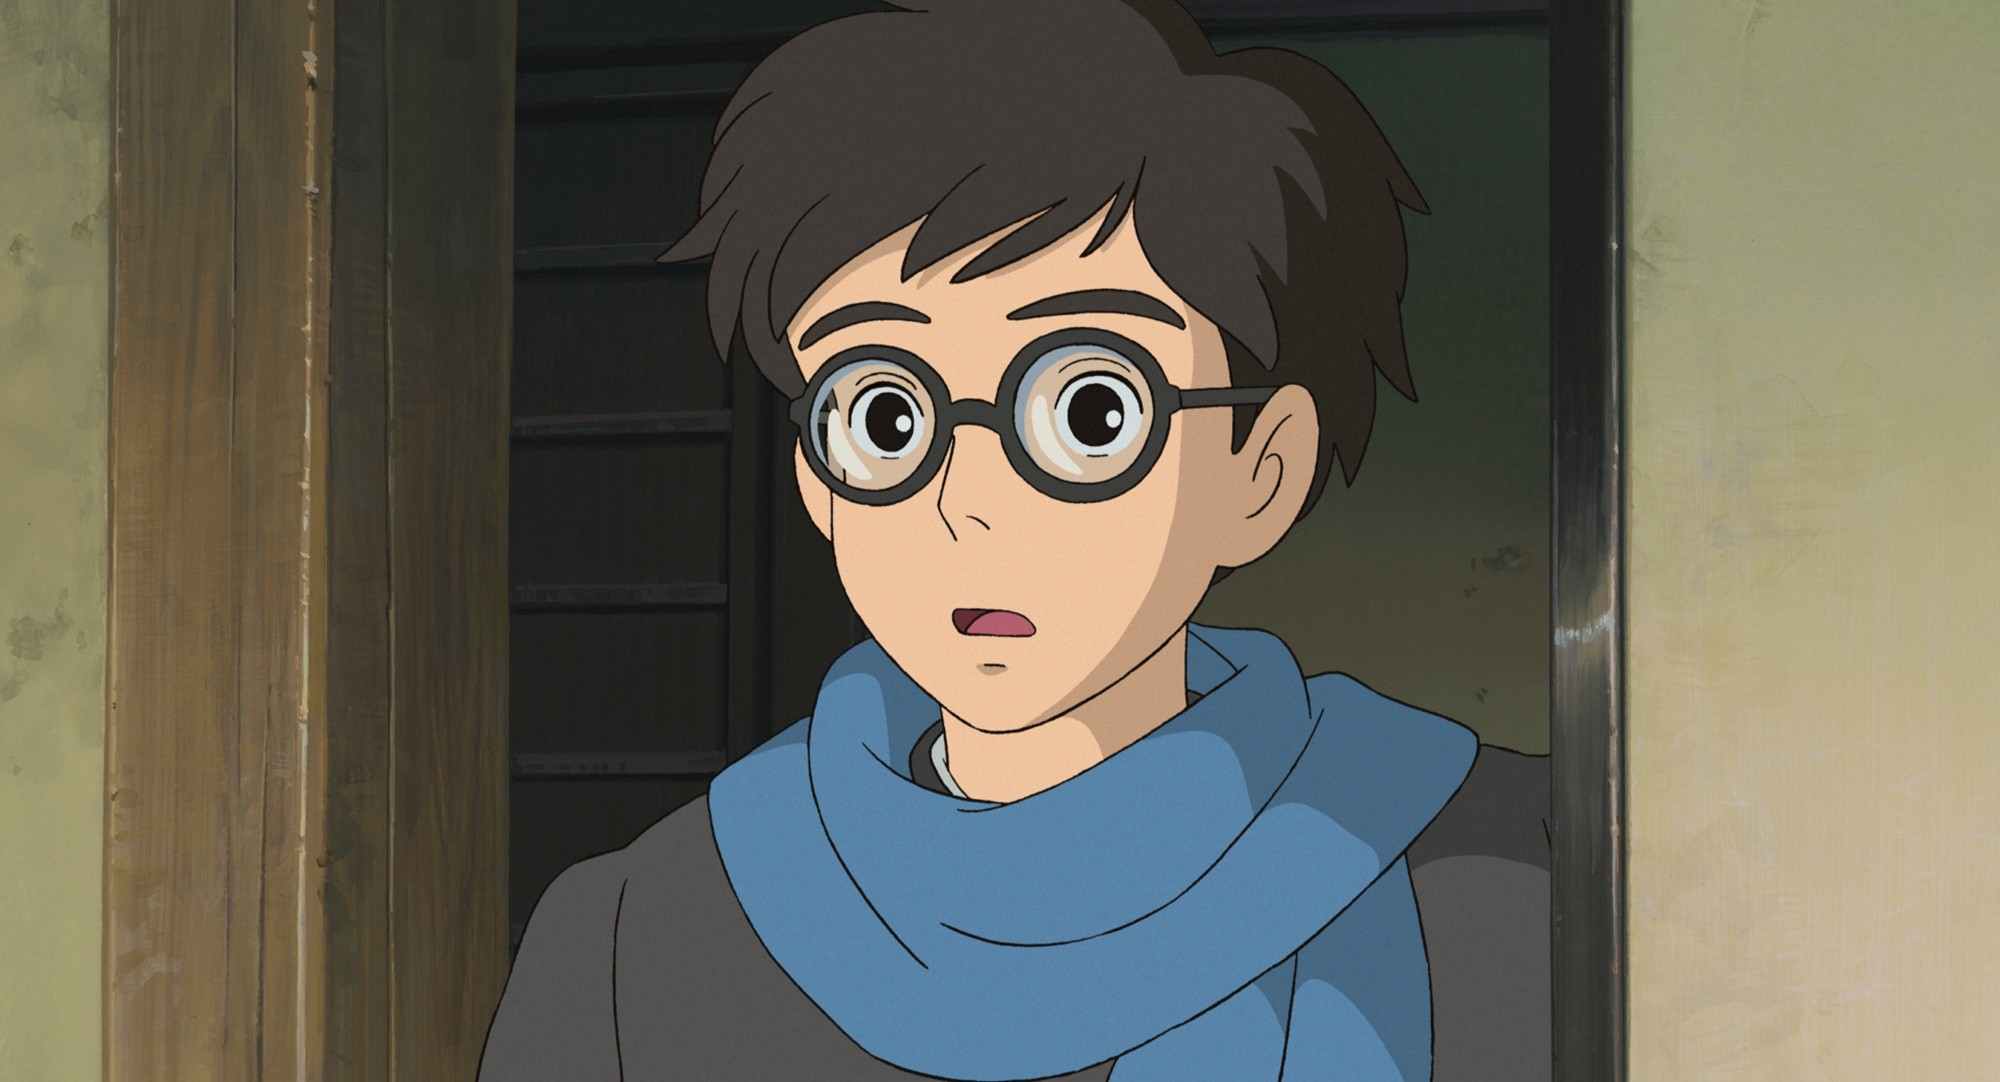 Jiro Horikoshi from Touchstone Pictures' The Wind Rises (2014)